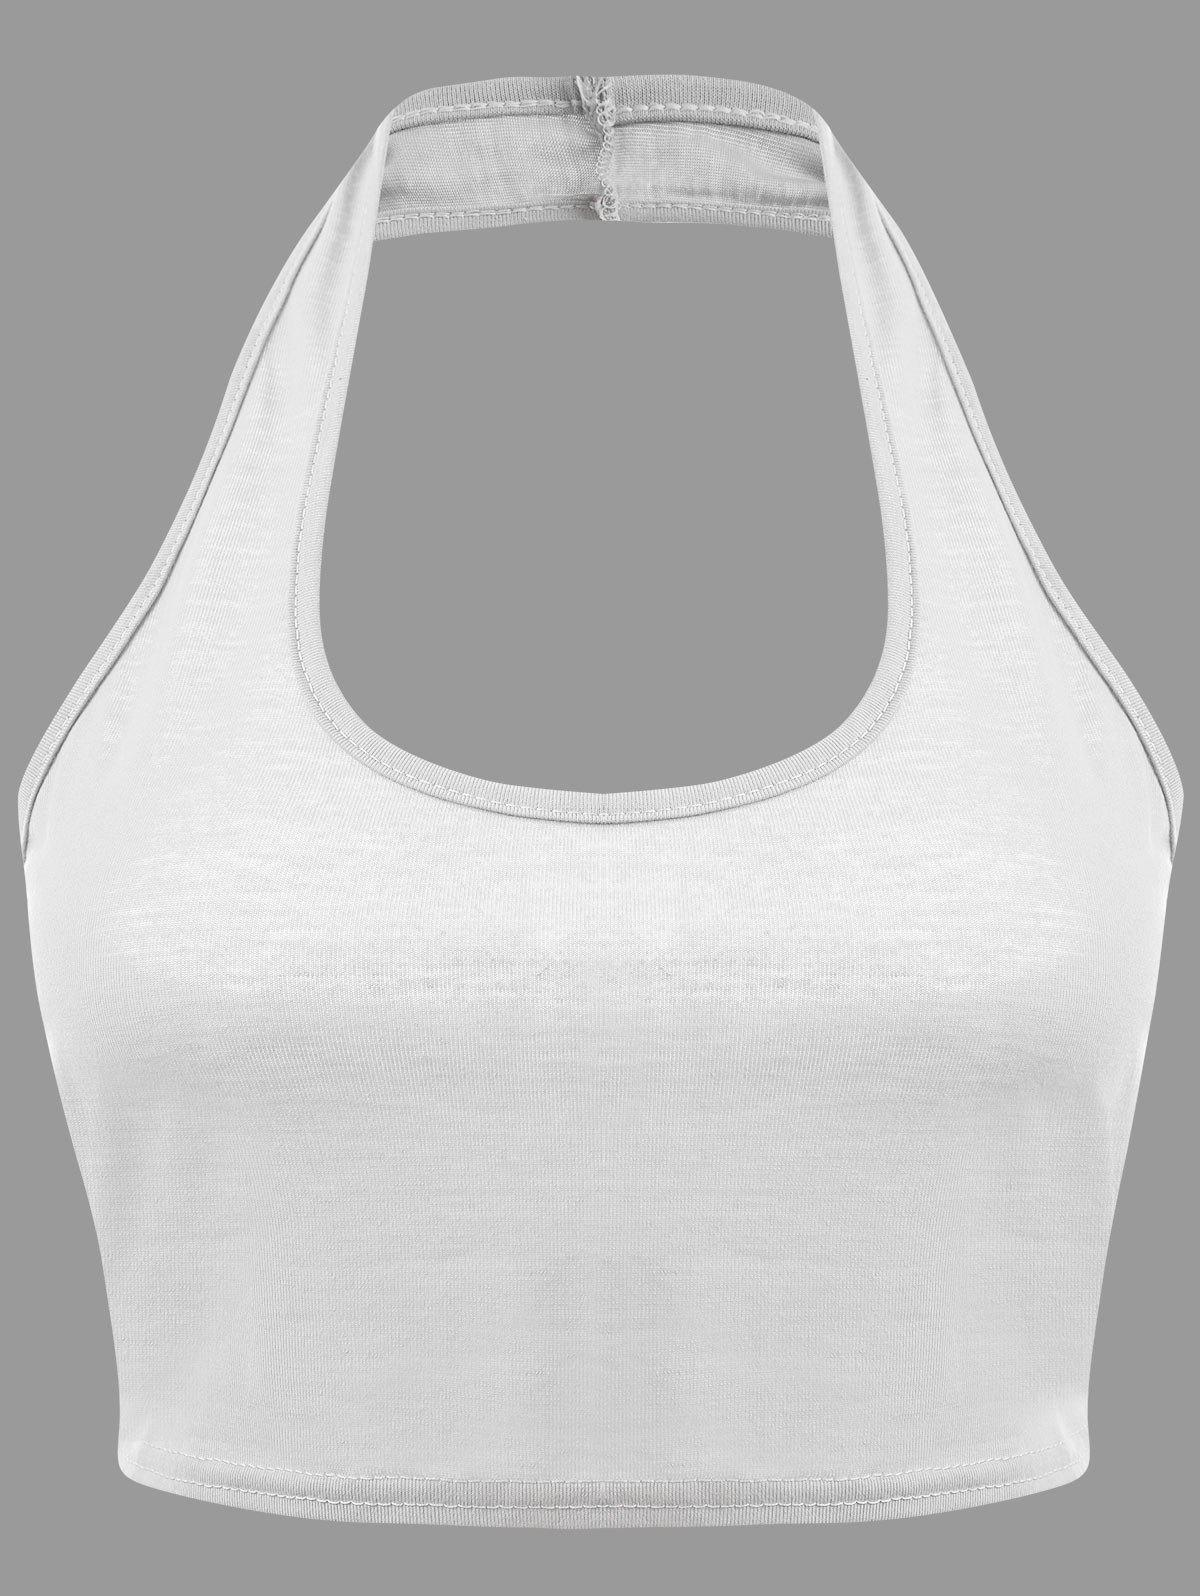 Backless Halter Plunge Crop Top - WHITE S